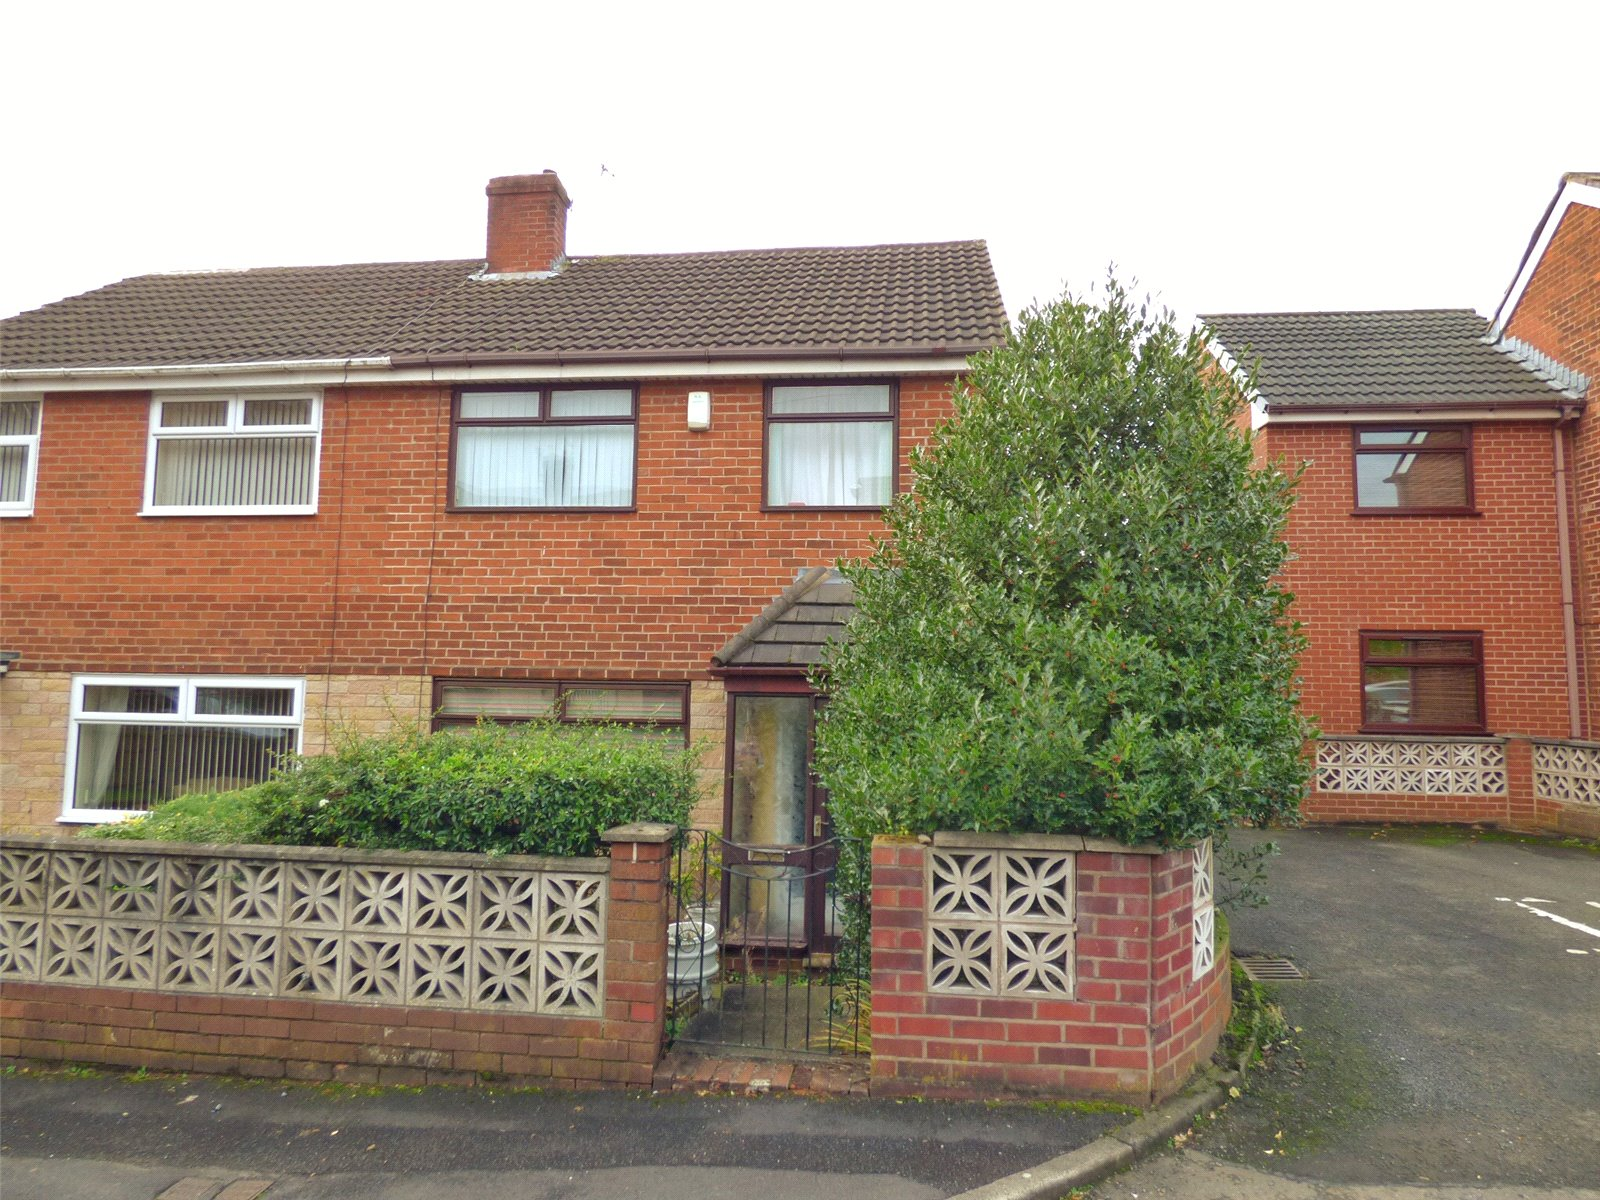 3 Bedrooms Semi Detached House for sale in Bernice Avenue, Chadderton, Oldham, OL9